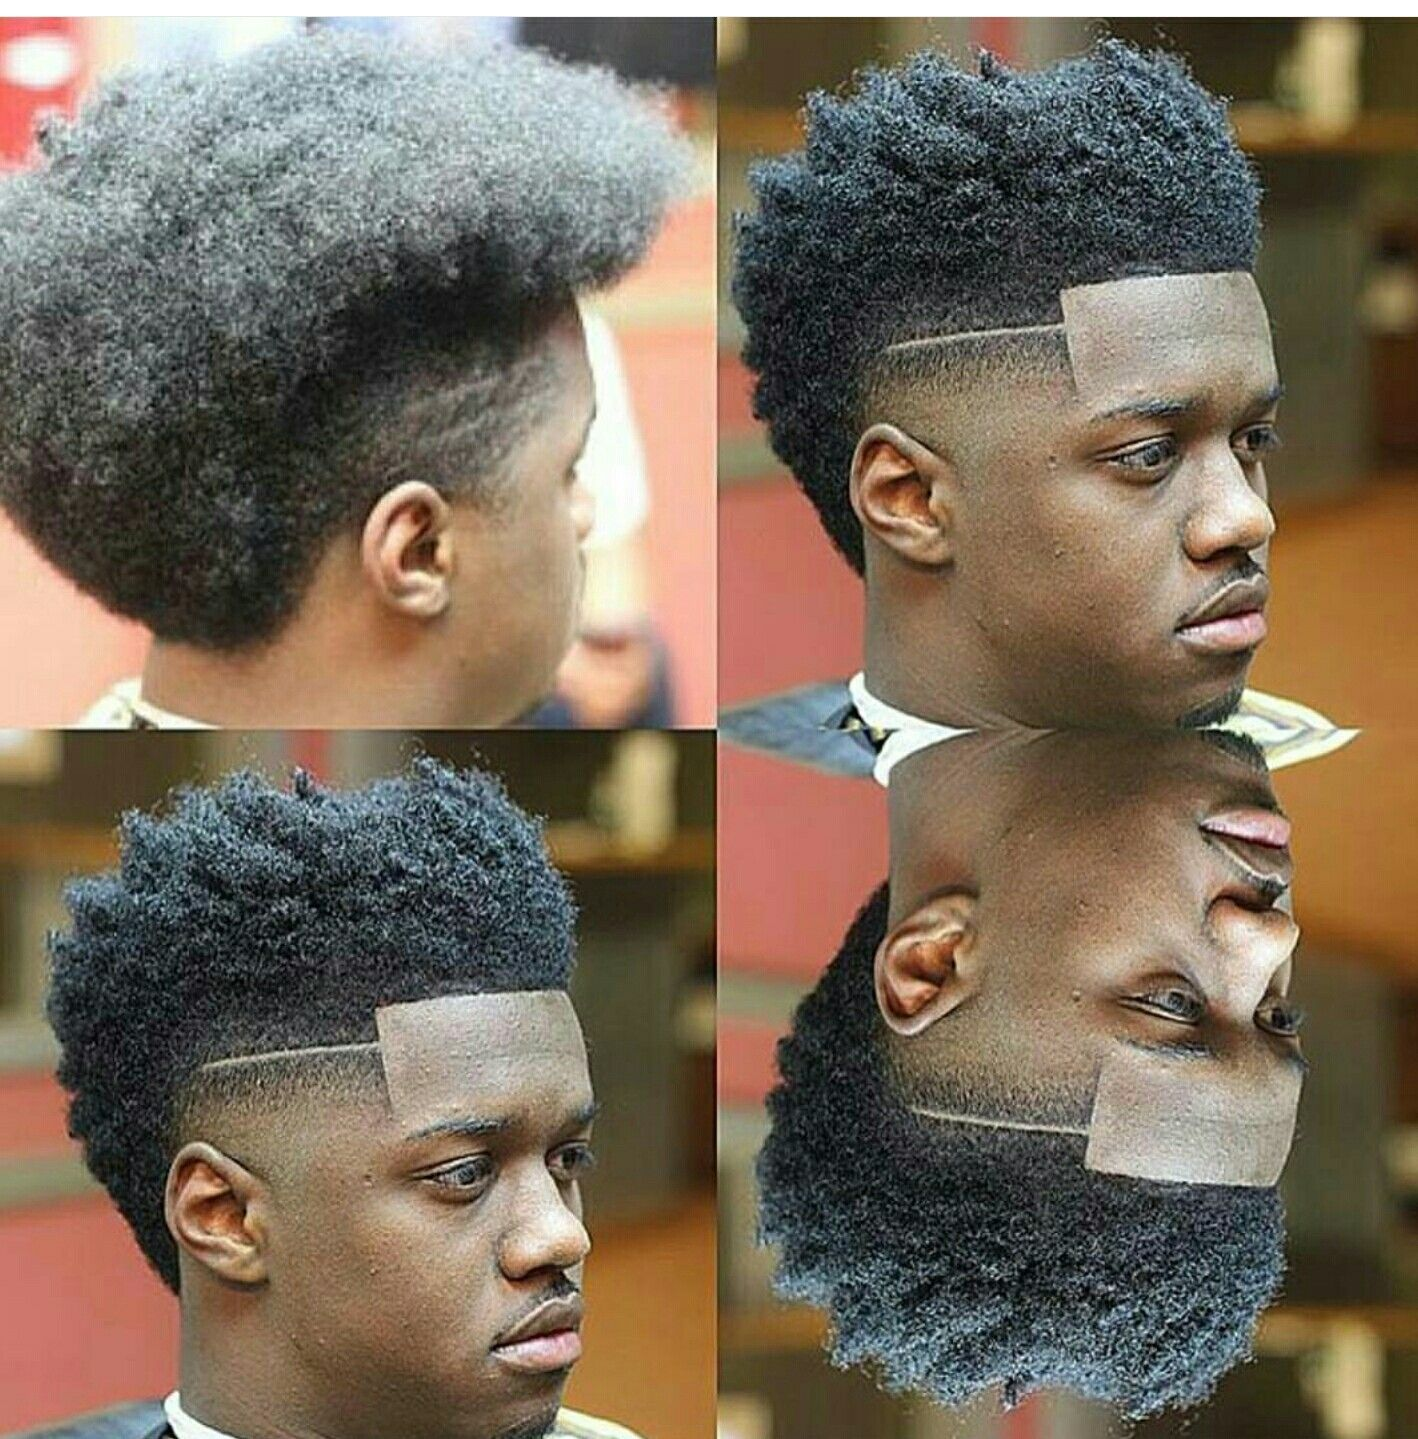 Pin by Mikel Staton on Hair Goals & Products | Black men